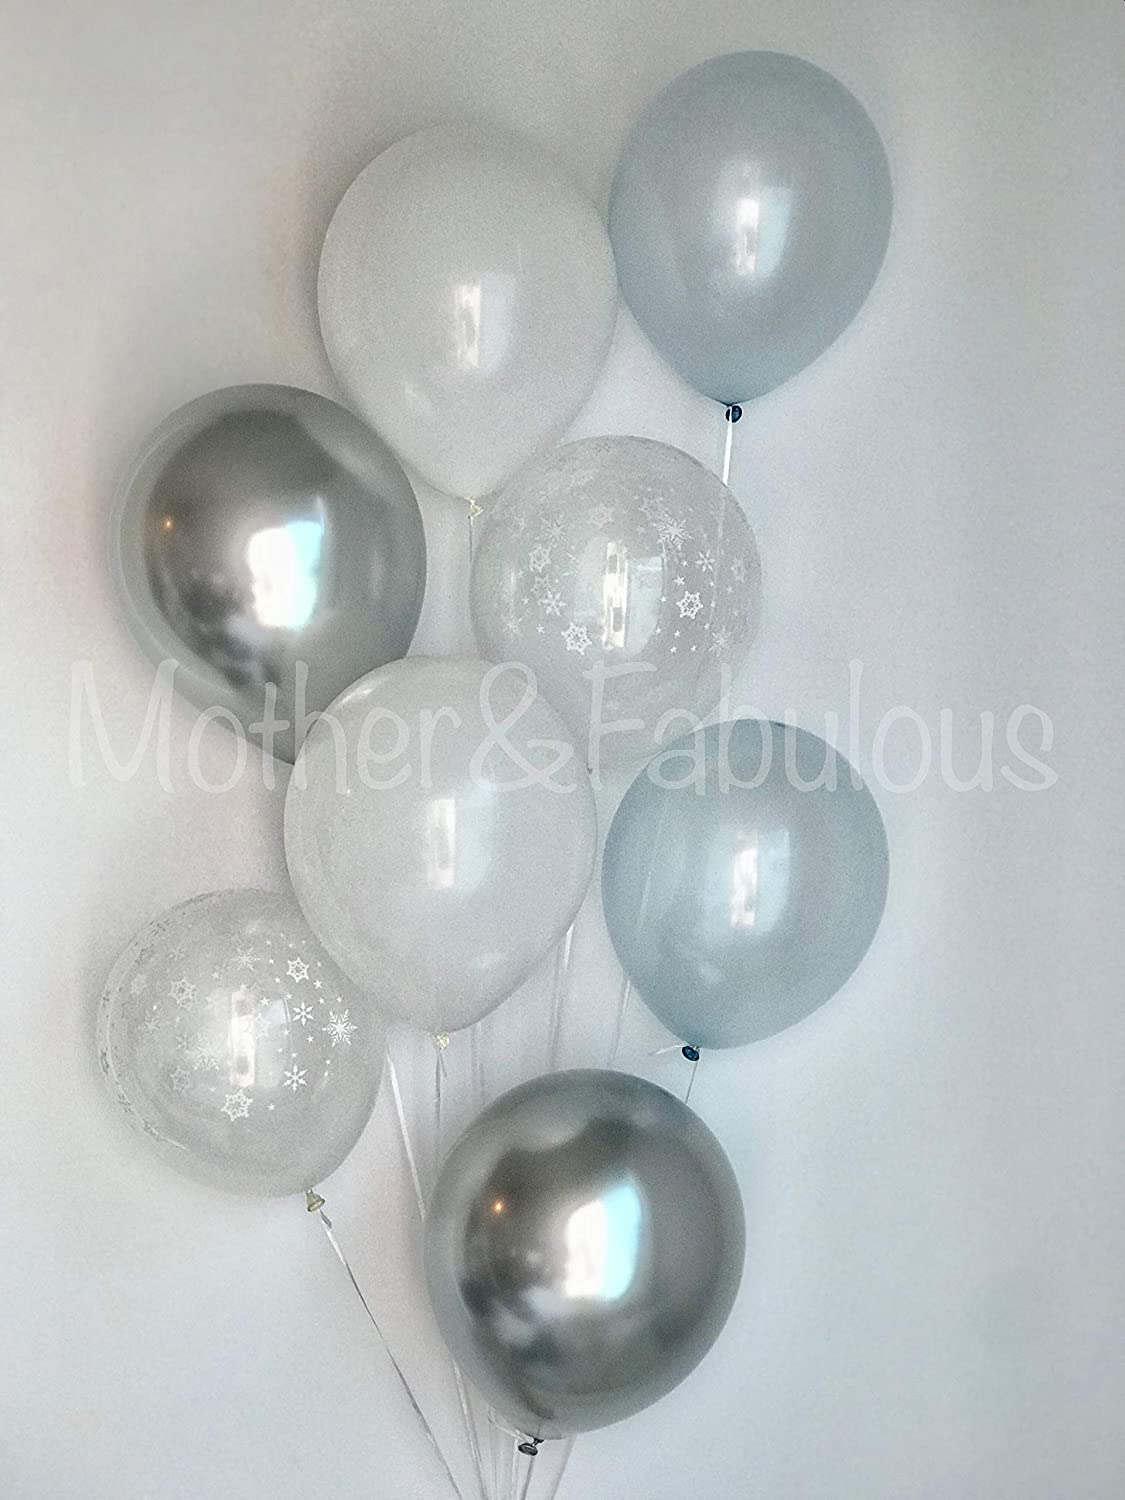 Everything Fabulous 12 3.2 Helium Quality Baby Boy /& Winter Theme Birthday Party Balloons Clear Latex Balloons with Falling White Snowflakes Design Pearl Silver and Light Baby Blue